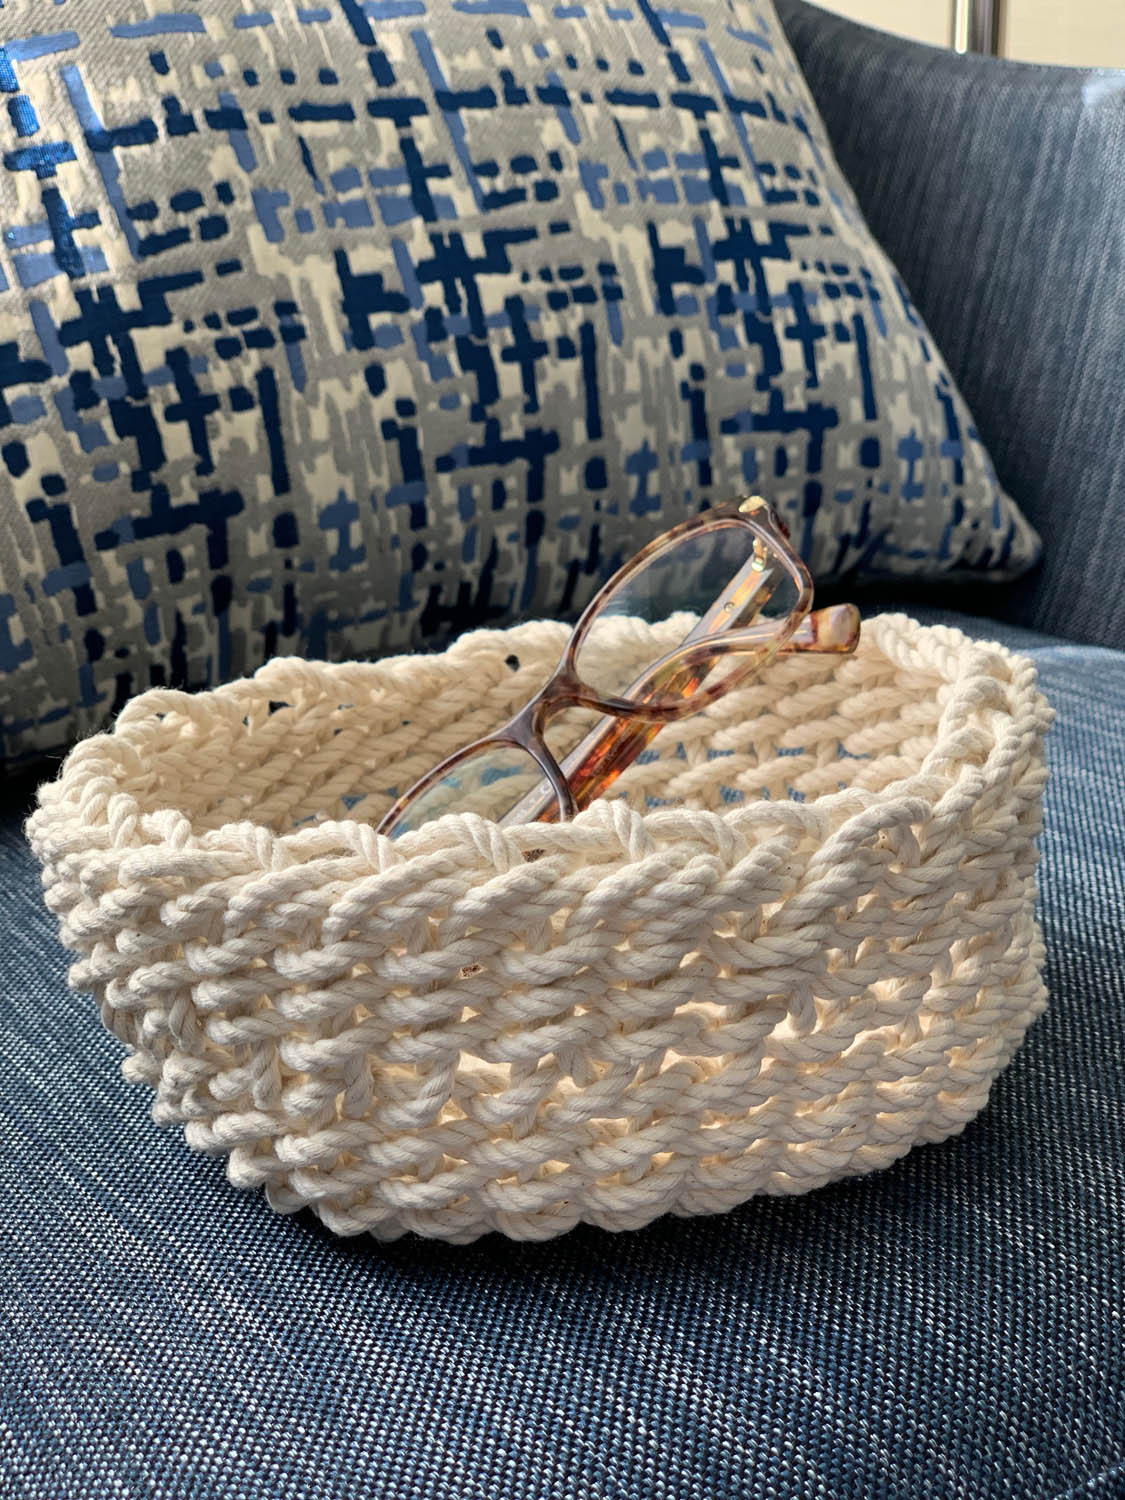 Completed woven bowl made at Craftcation